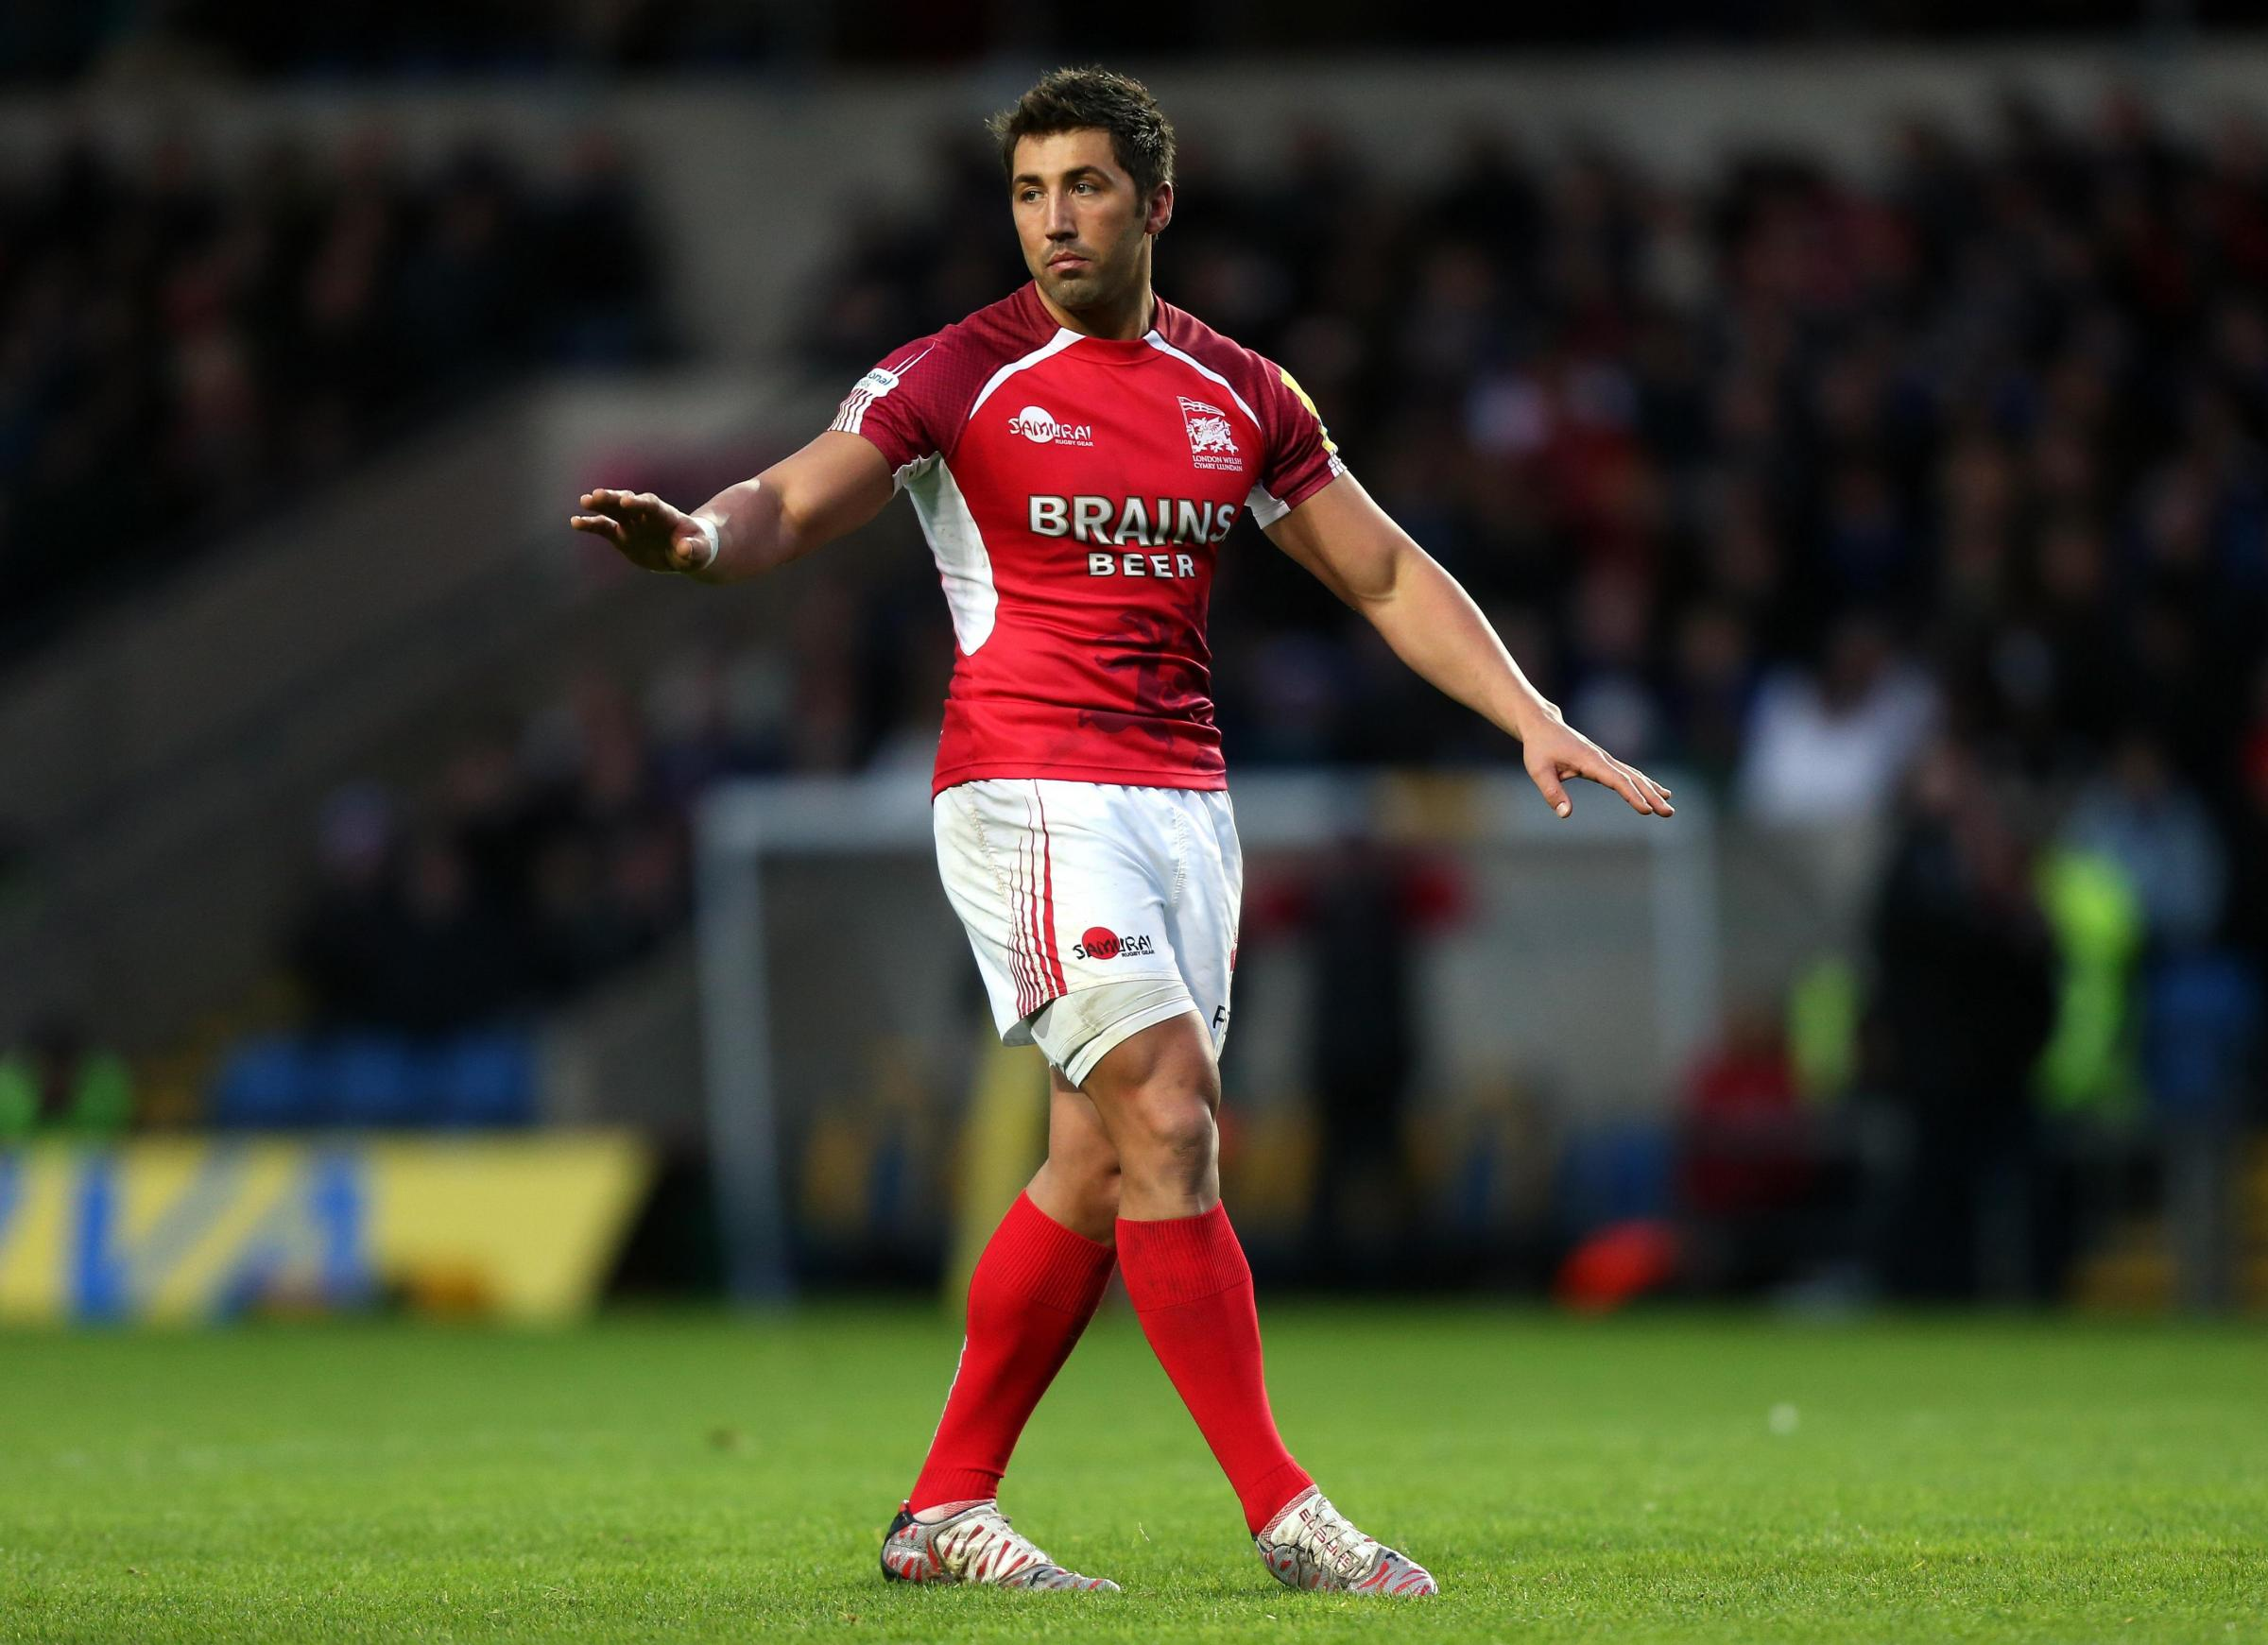 ON WAY TO DRAGONS? Gavin Henson